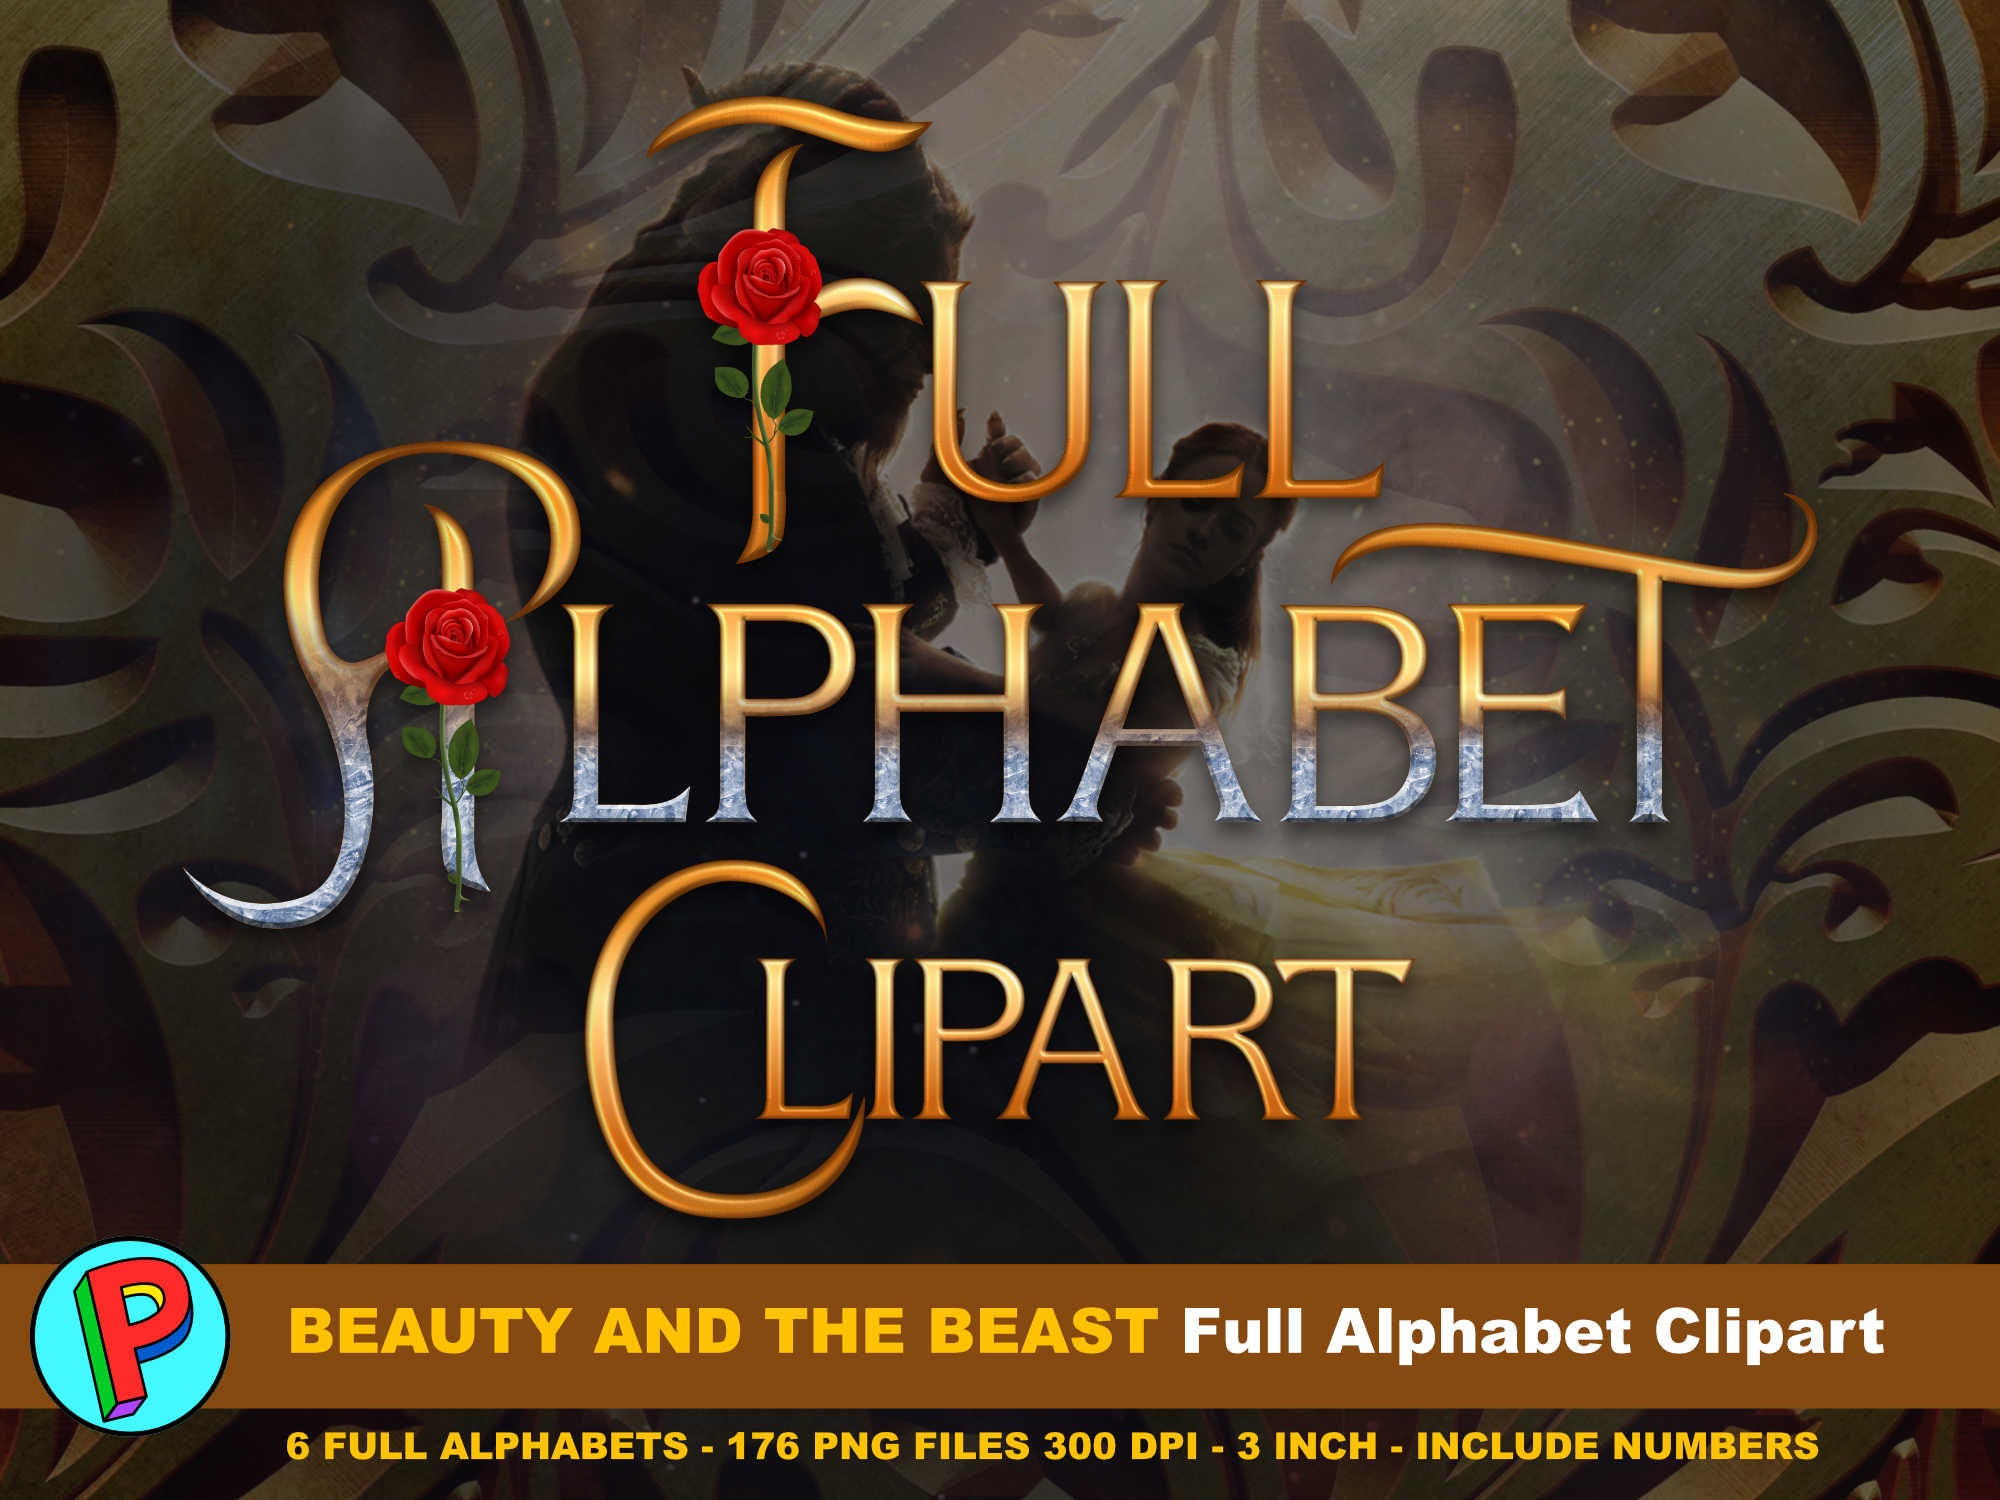 Beauty and the Beast Movie 2017 Full Alphabet Clipart 6